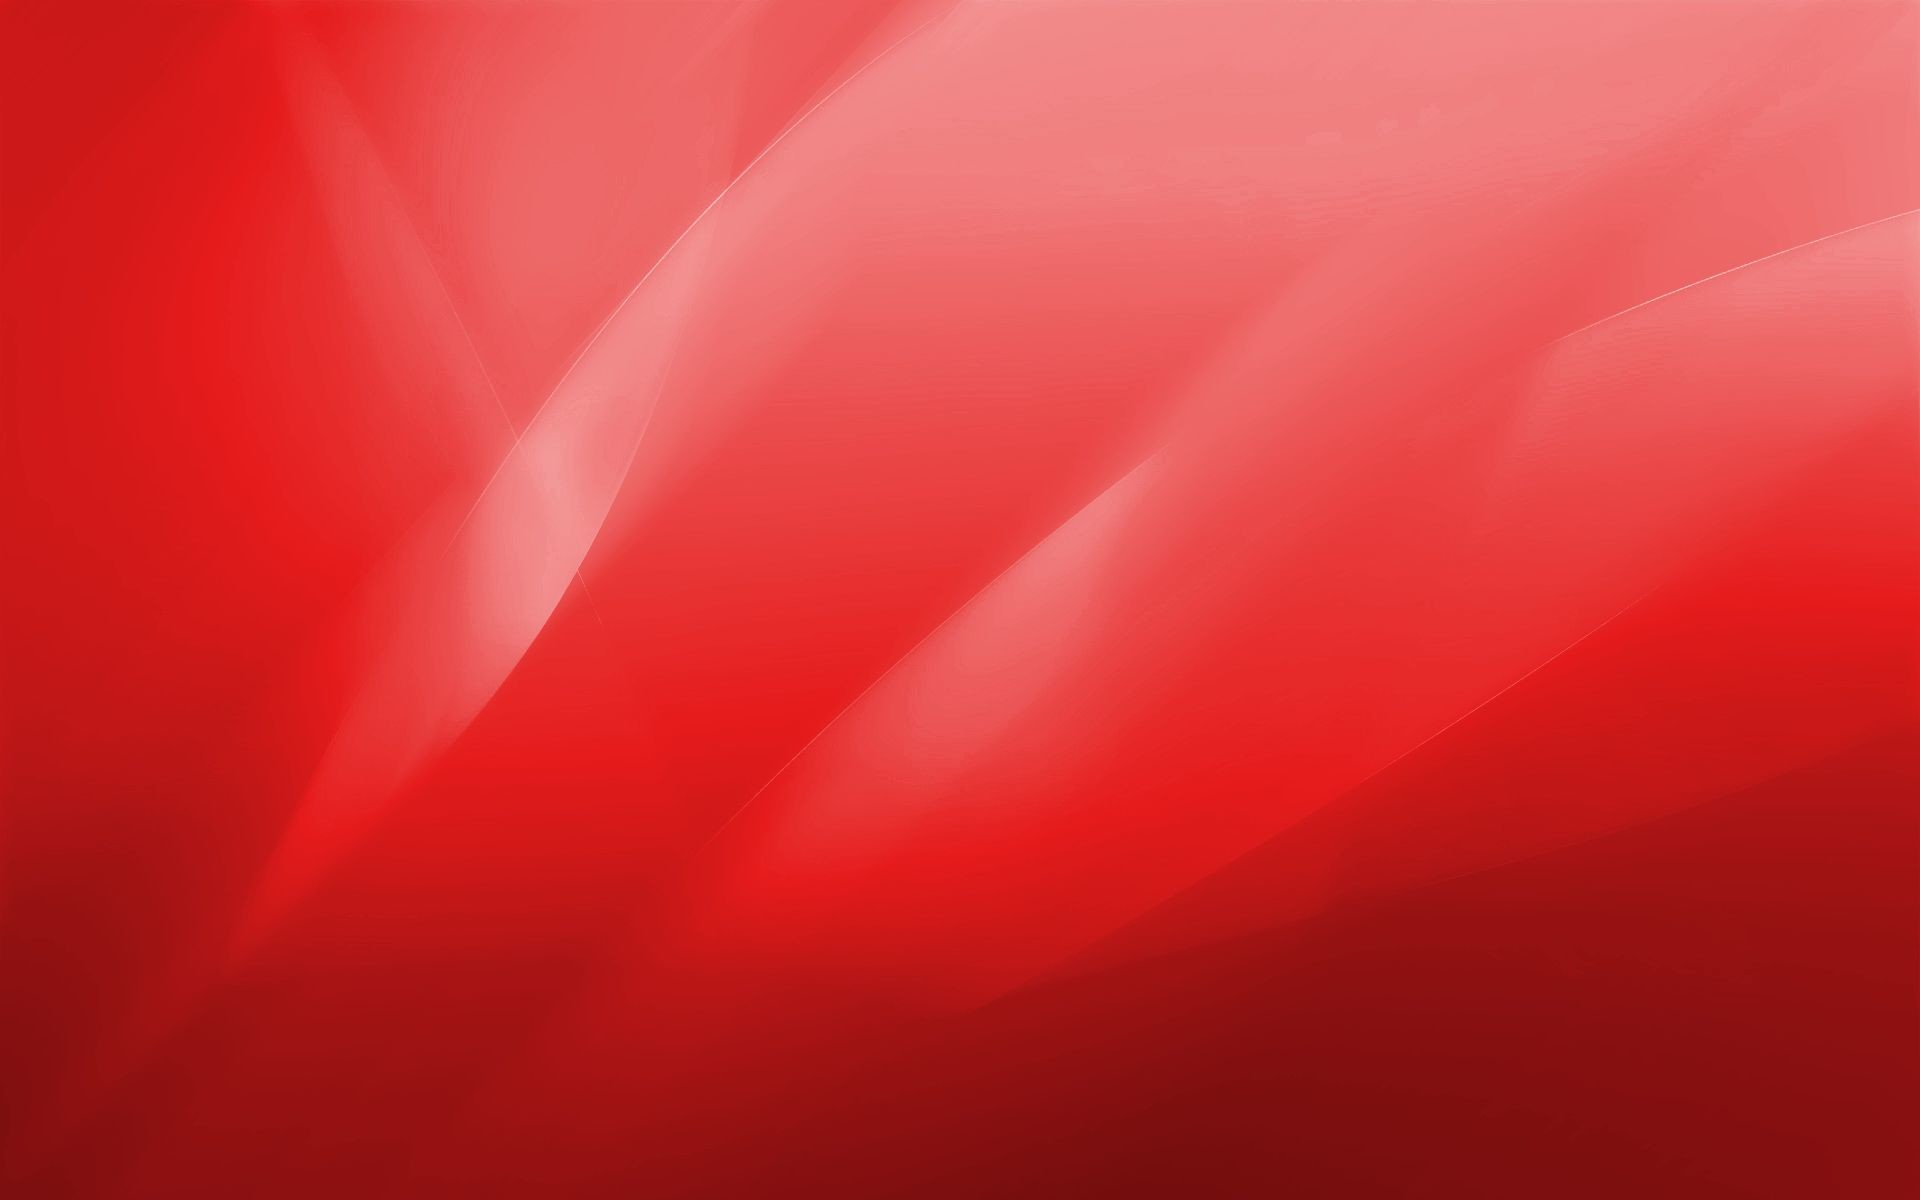 Red Wallpaper Photo